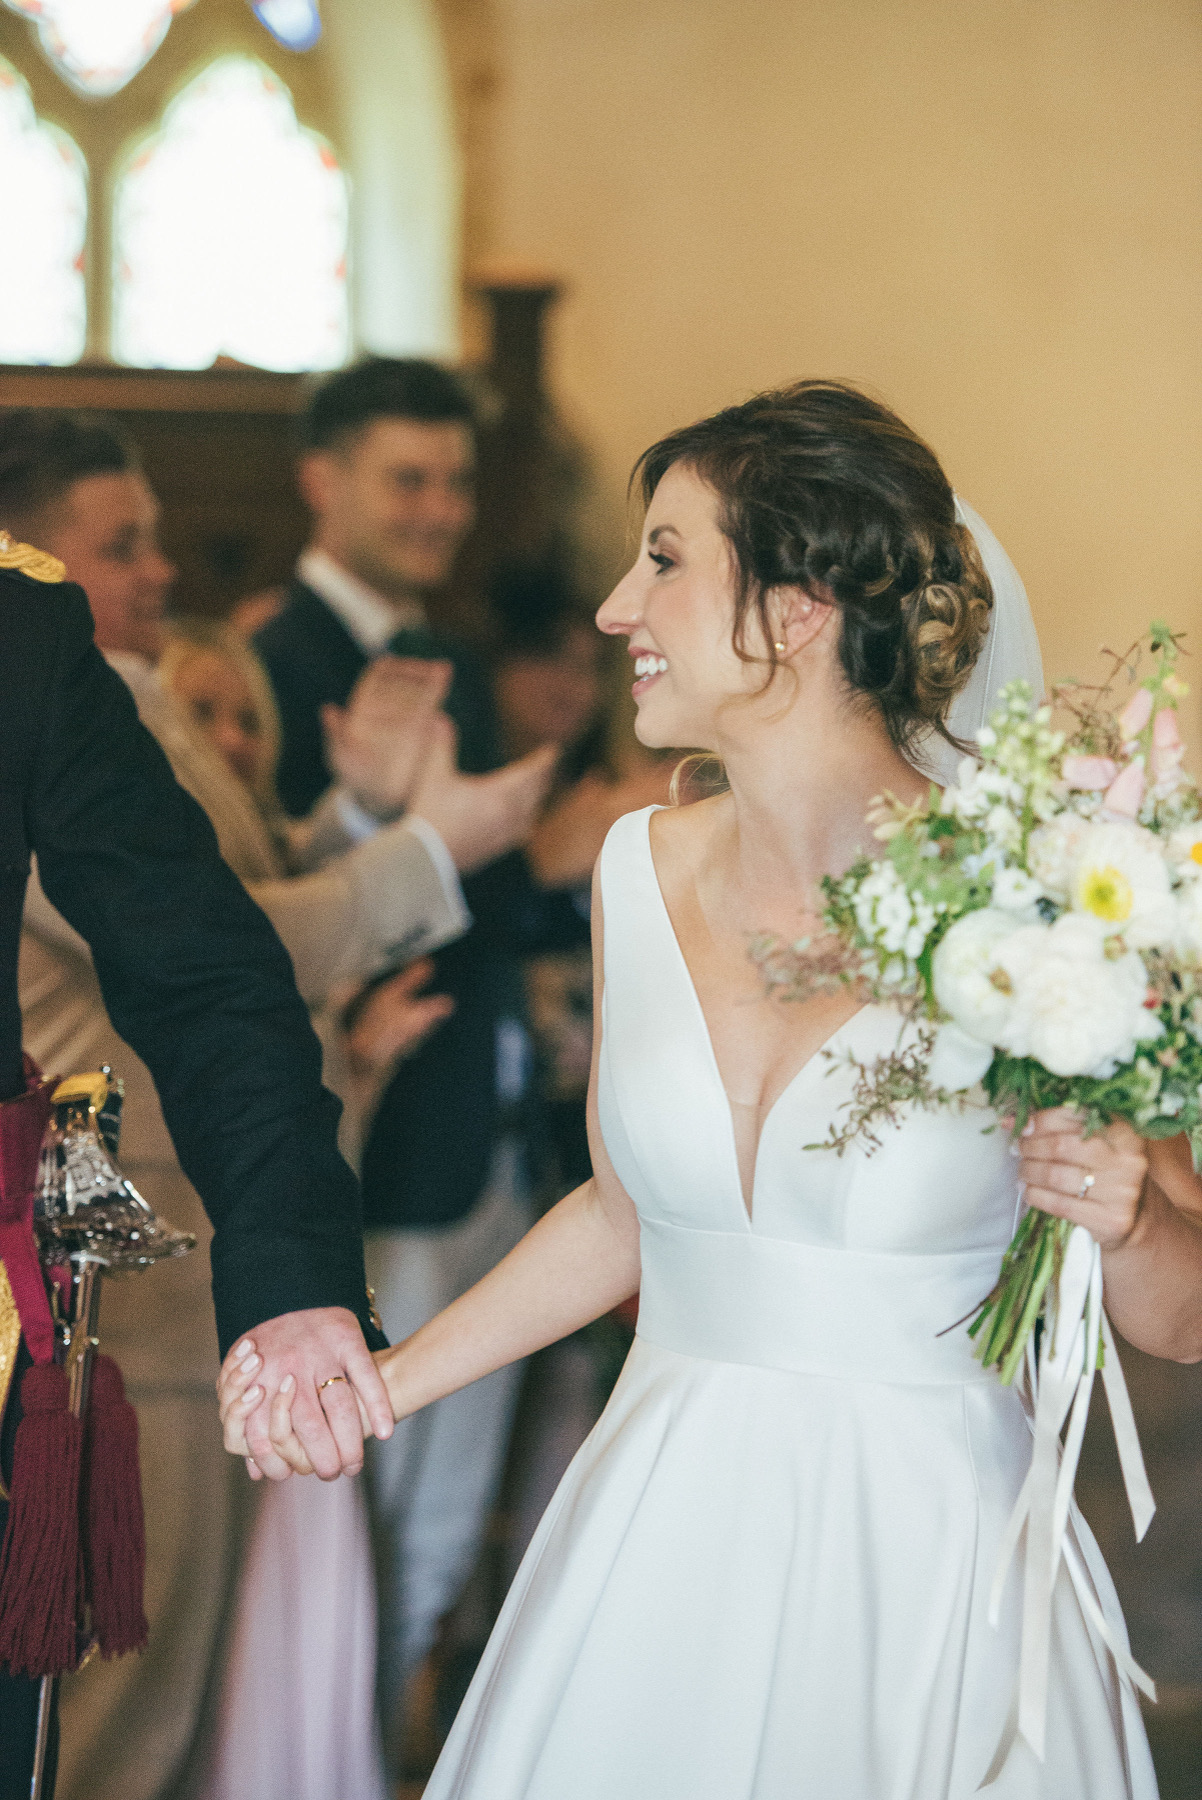 Bridal bouquet by Zanna @ S P I N D L E - british flowers from the wild heart of dorset